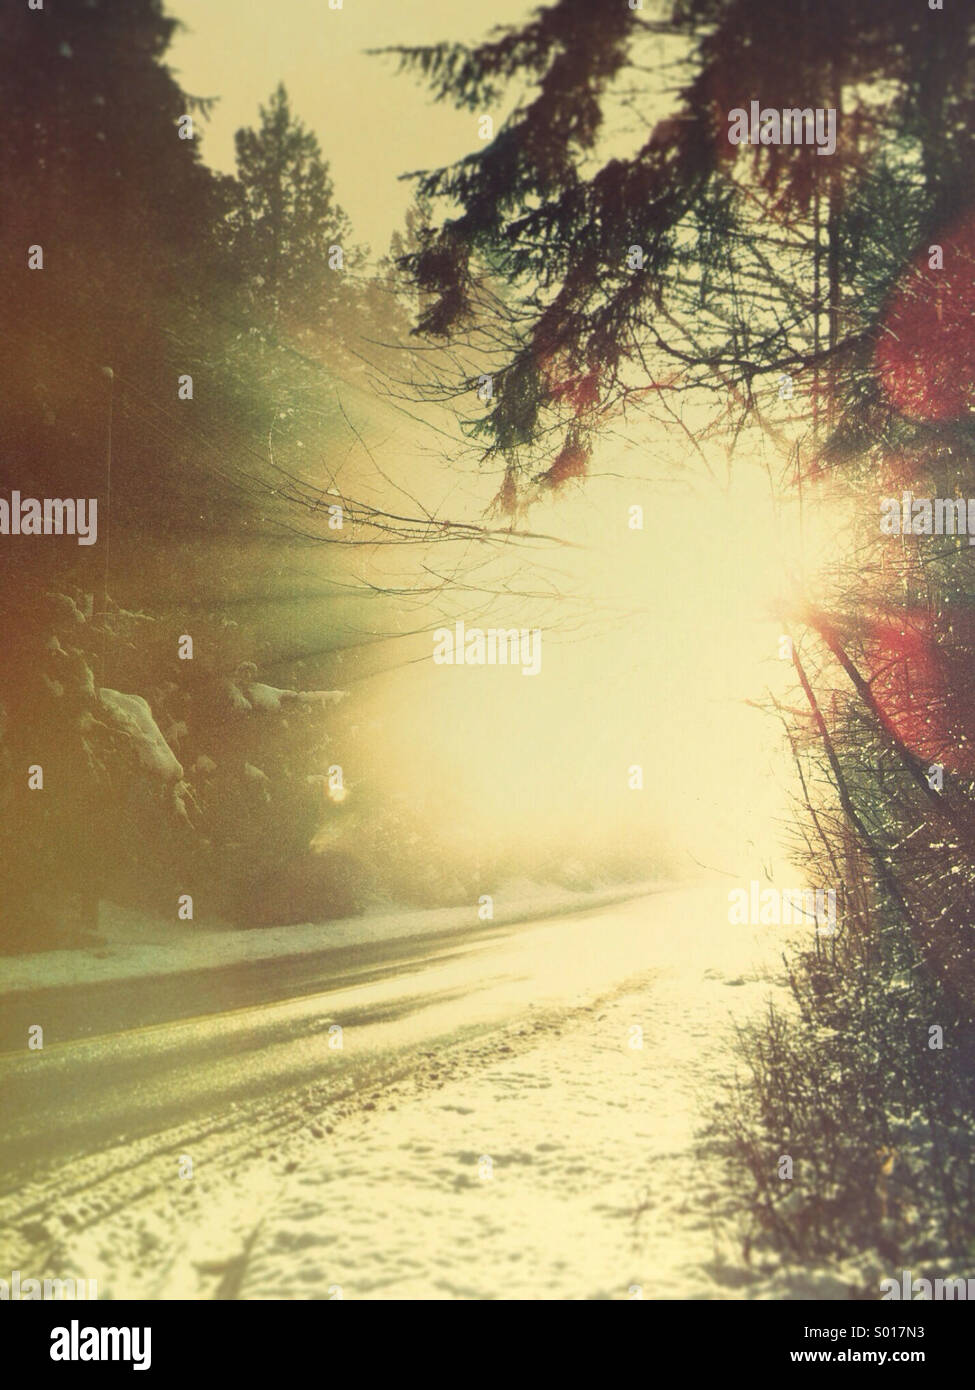 Wet rural road and strong late afternoon sun rays in winter. - Stock Image